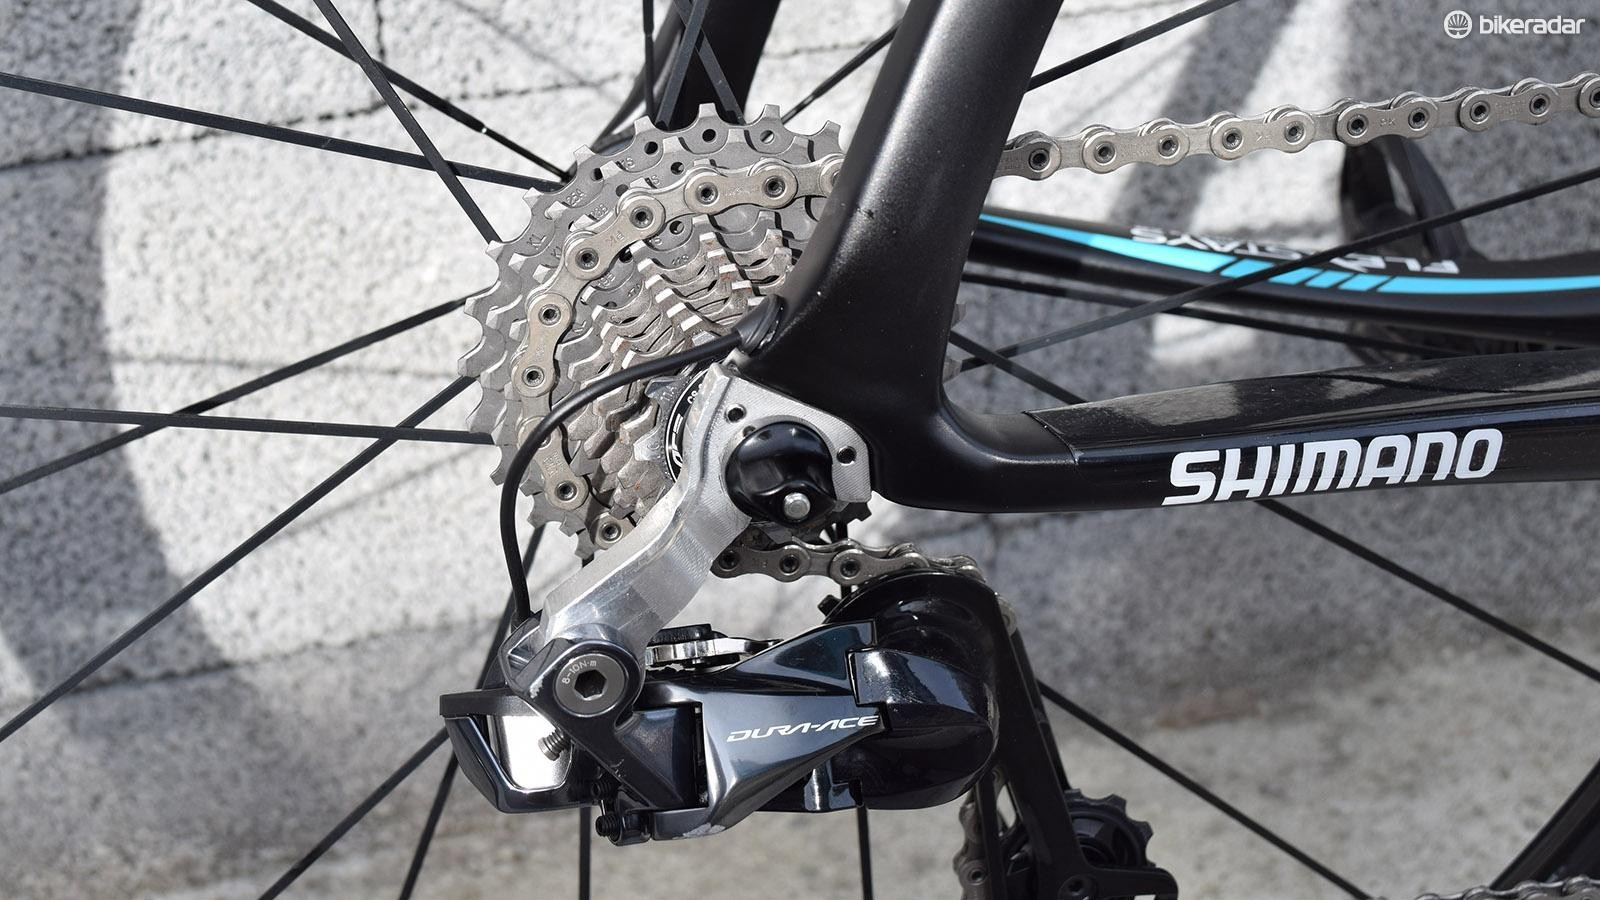 Pinarello have produced a custom rear derailleur hanger for the team, possibly for more stiffness and the Team Sky mechanics are happy with it, according to the team